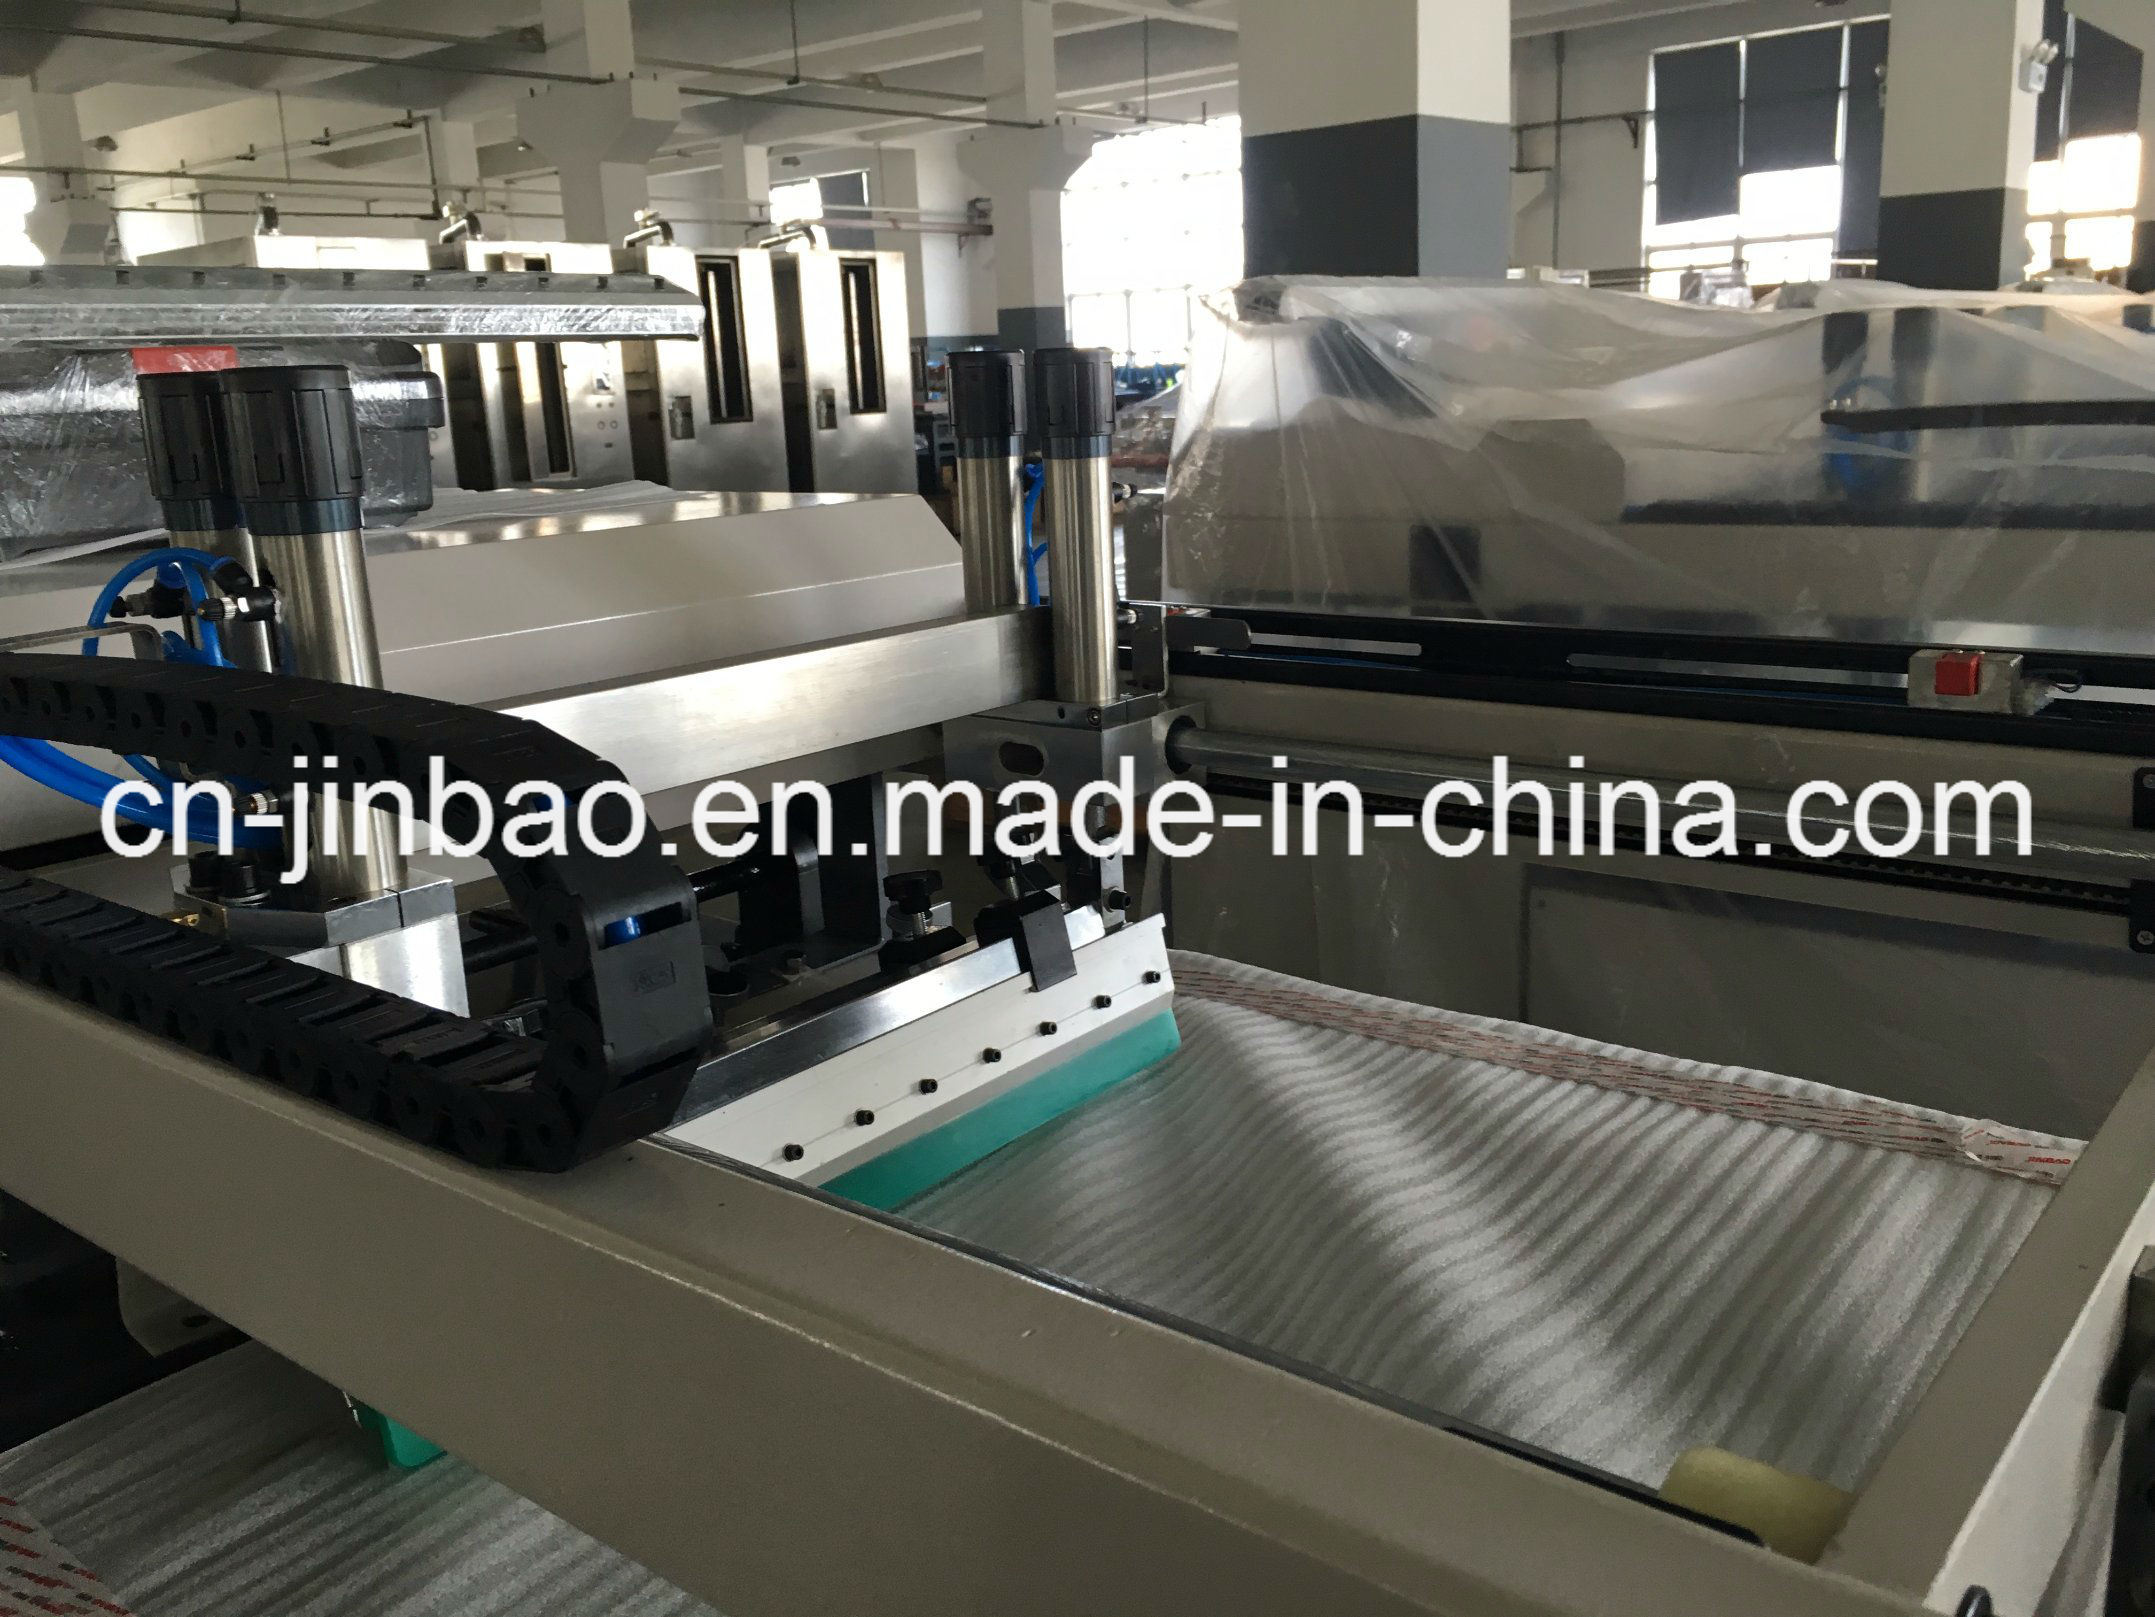 Semi-Automatic Manuel Silk Screen Printing Machine (JB-6090G)